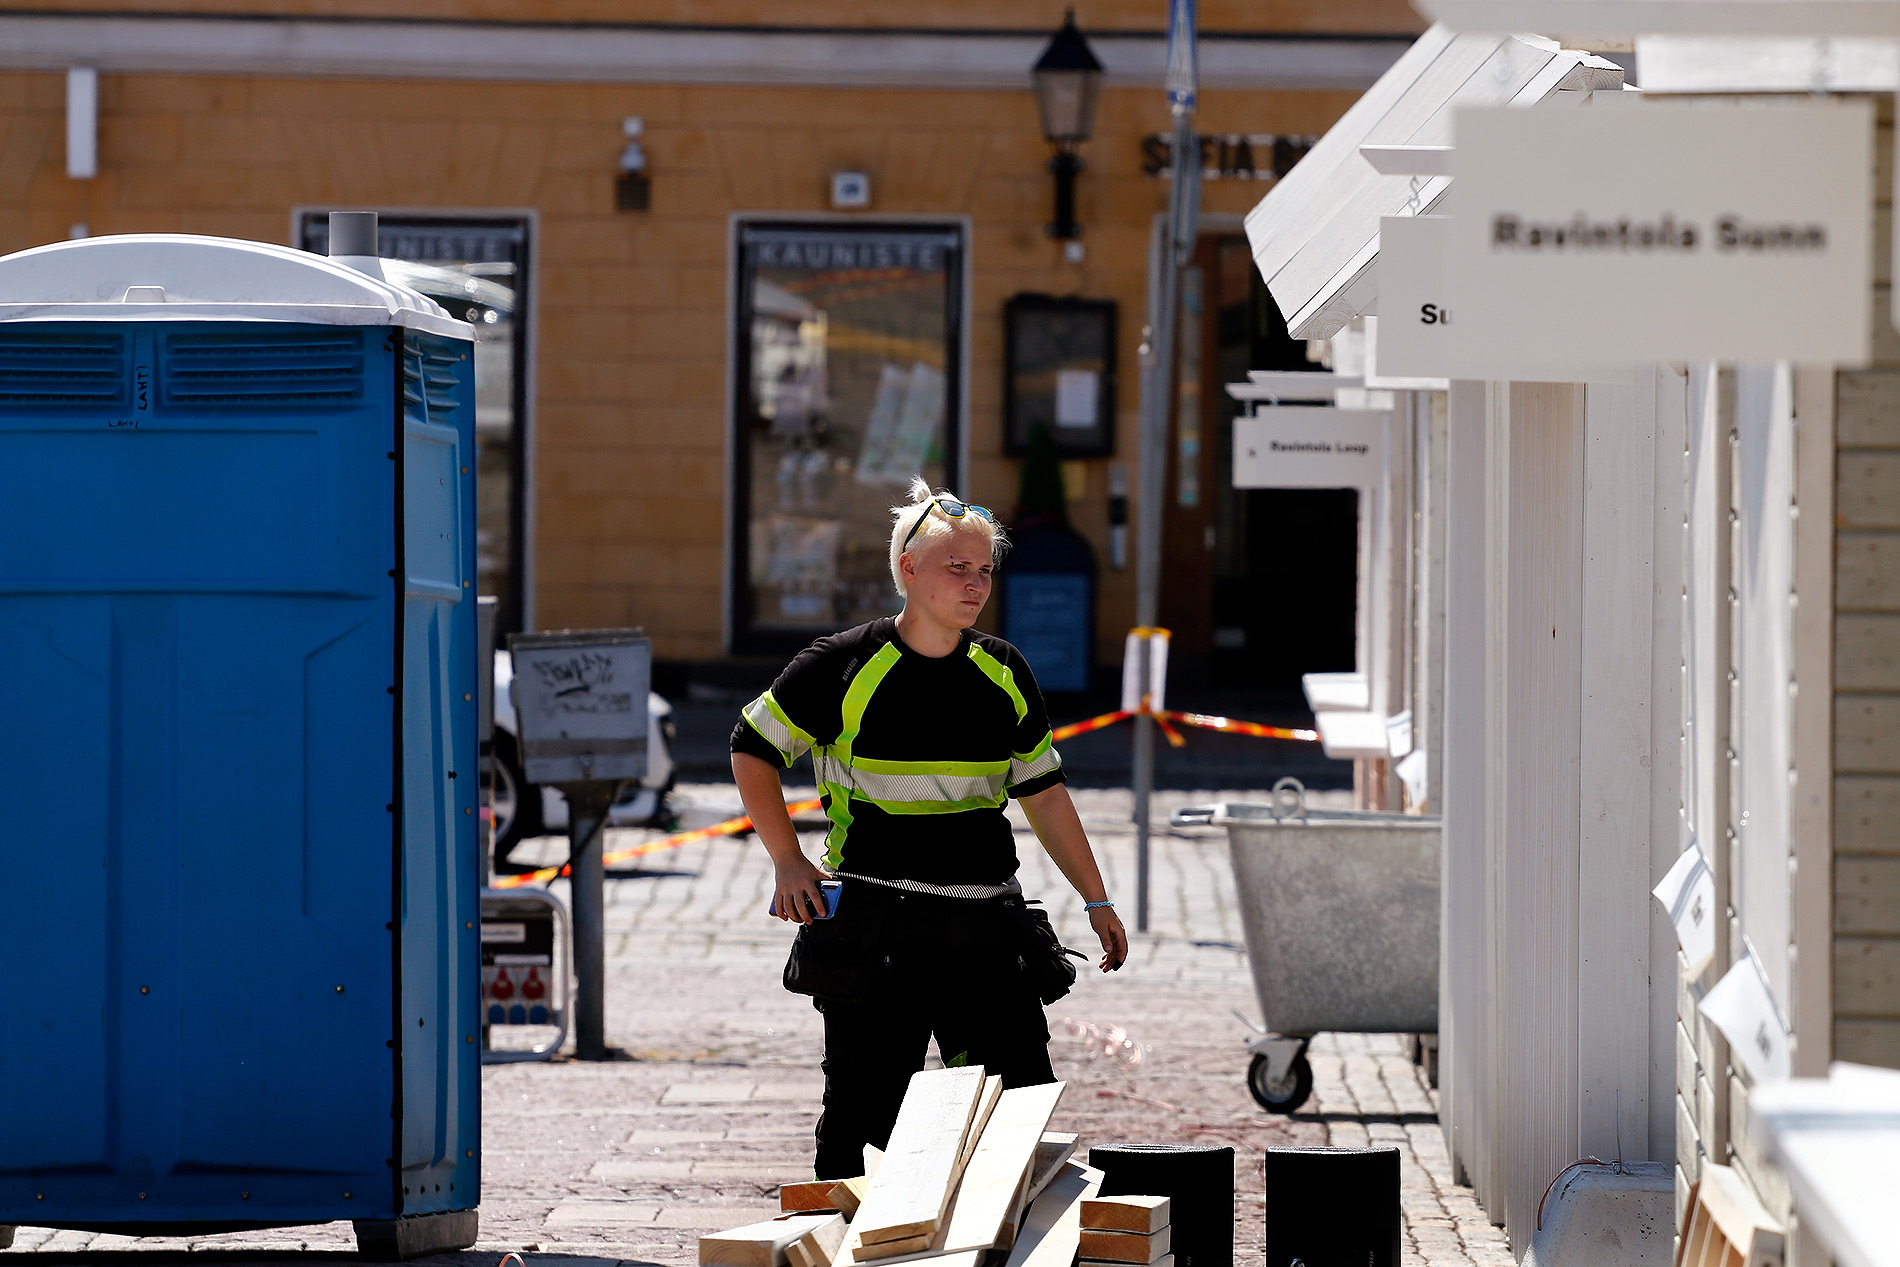 There are also wooden cottages familiar to the visitors from the Christmas market. Picture: Tony Öhberg/Finland Today